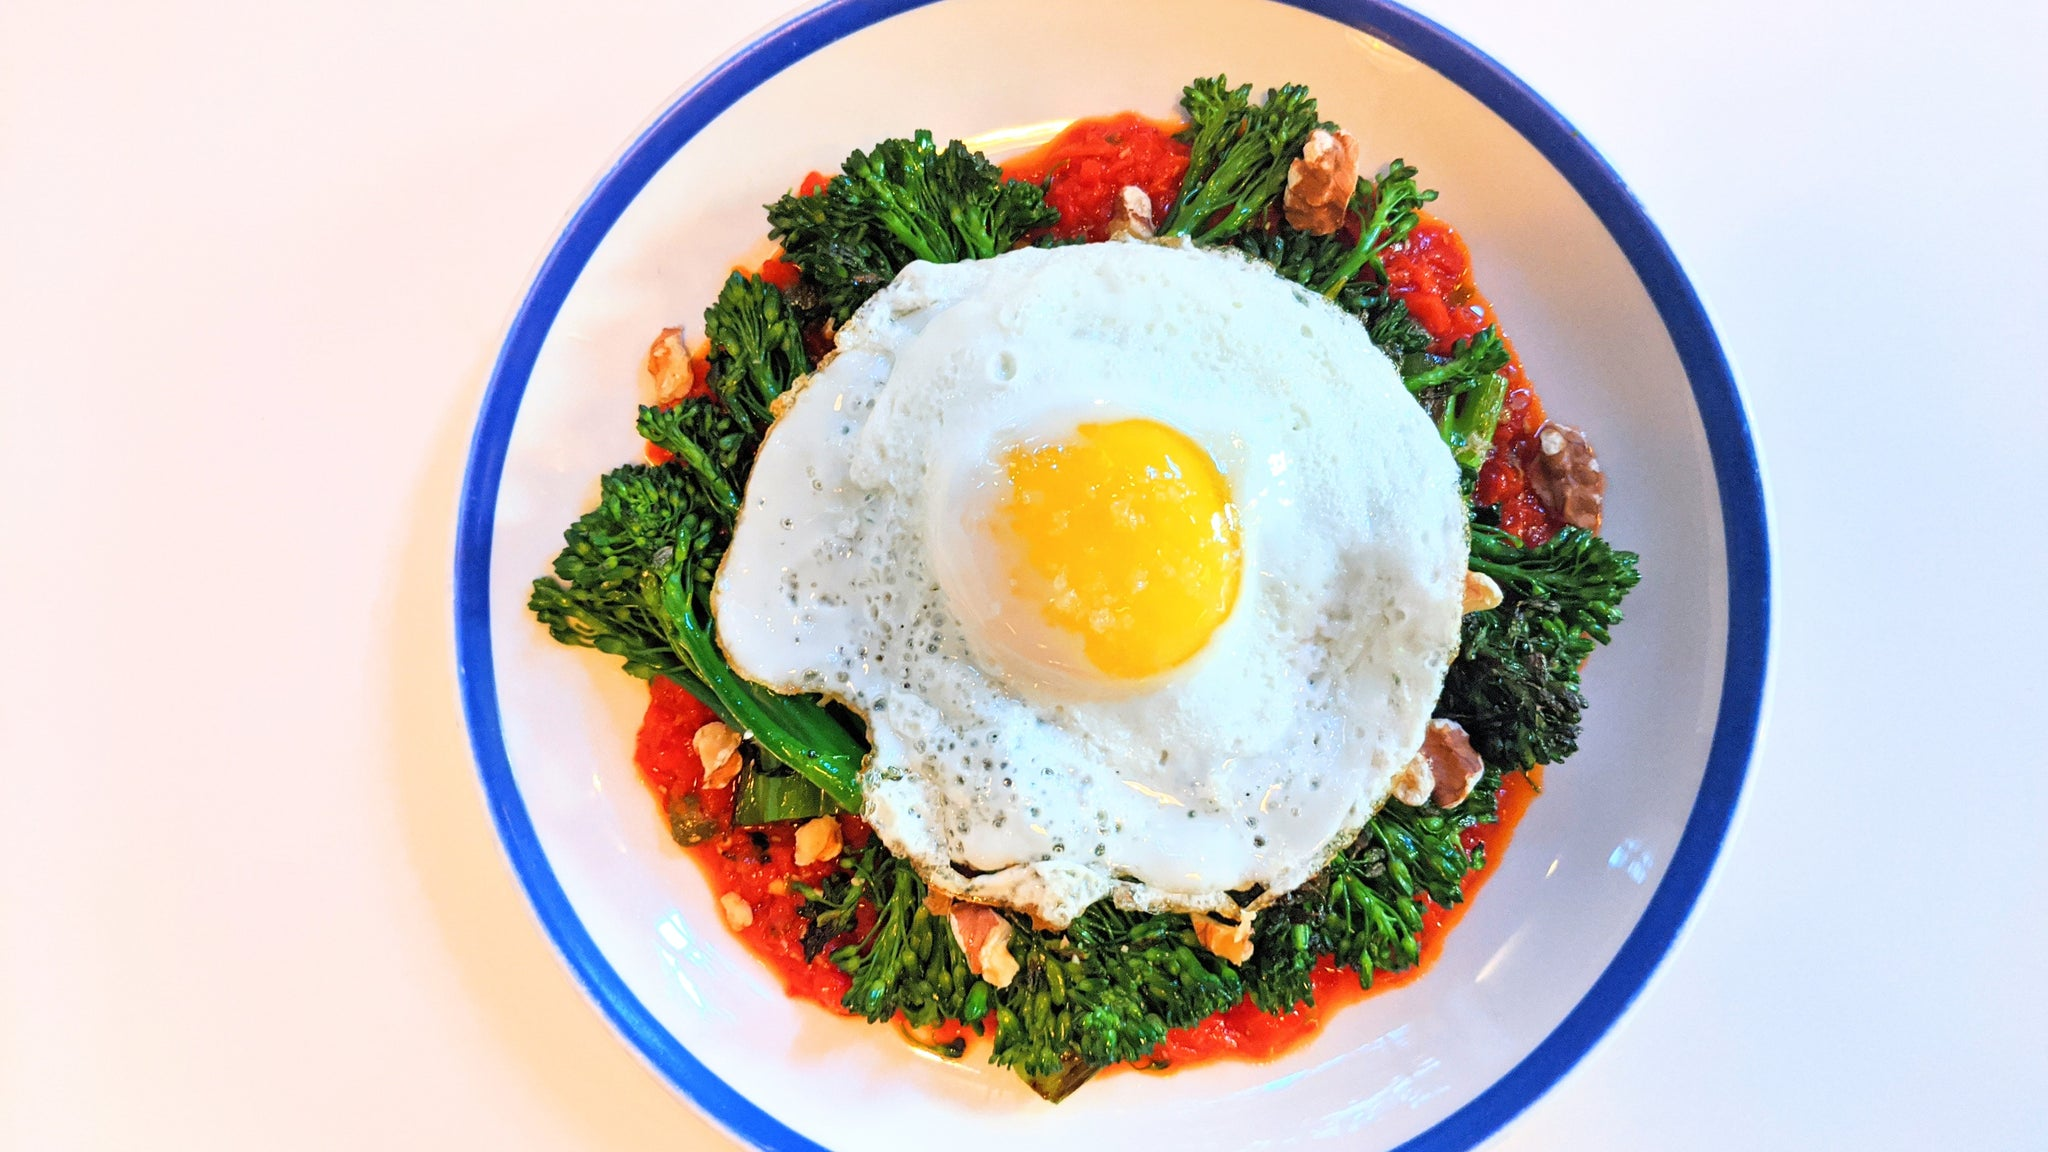 <i>Pairing Recipe</i> — Chef Harry Cho's Sauteed Broccolini with Roasted Red Pepper Sauce